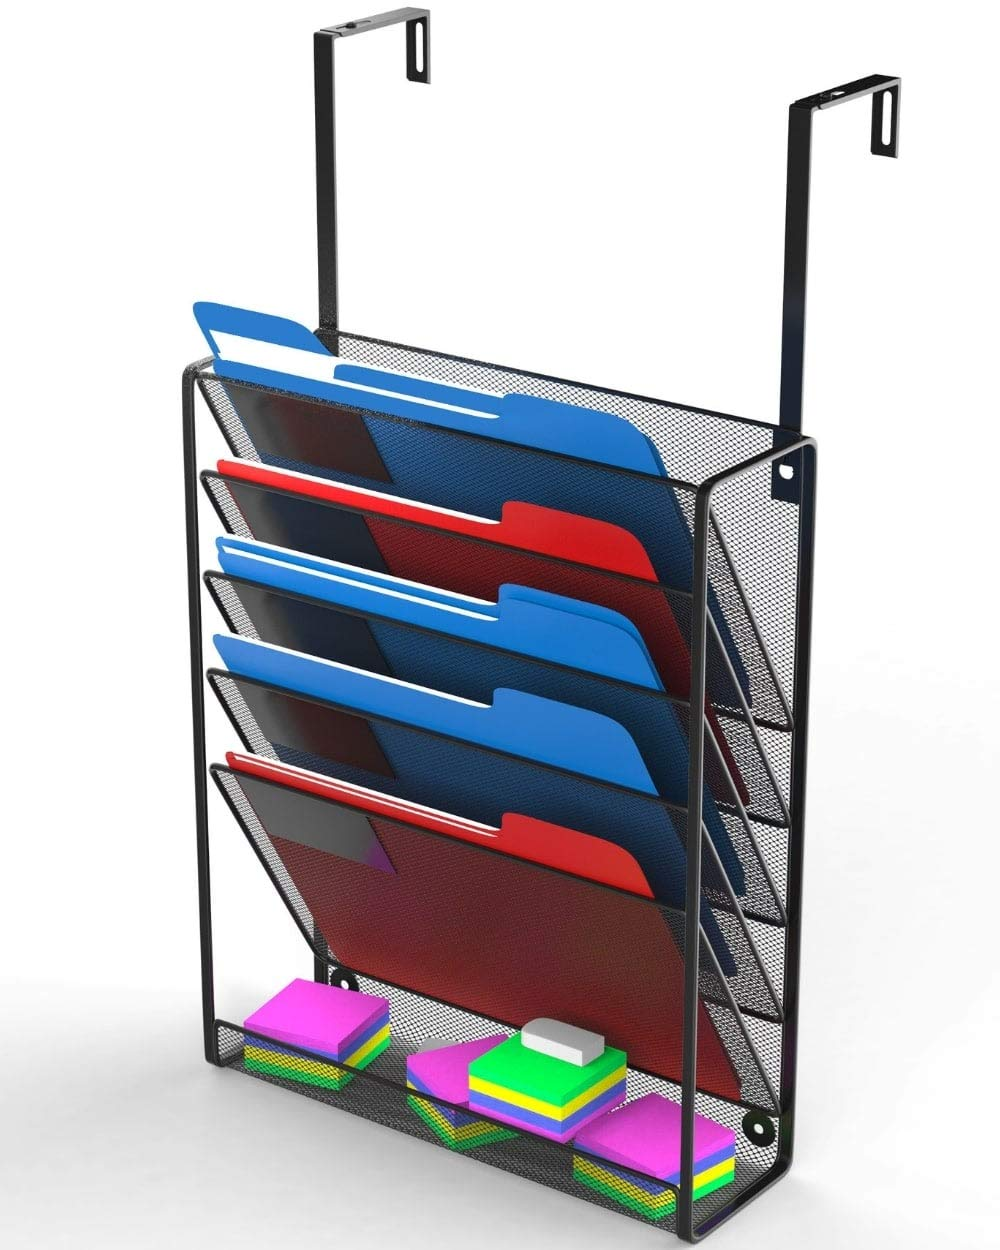 Hanging Organizer Wall File Holder - Mail, Cubicle, Office, Desk Organization